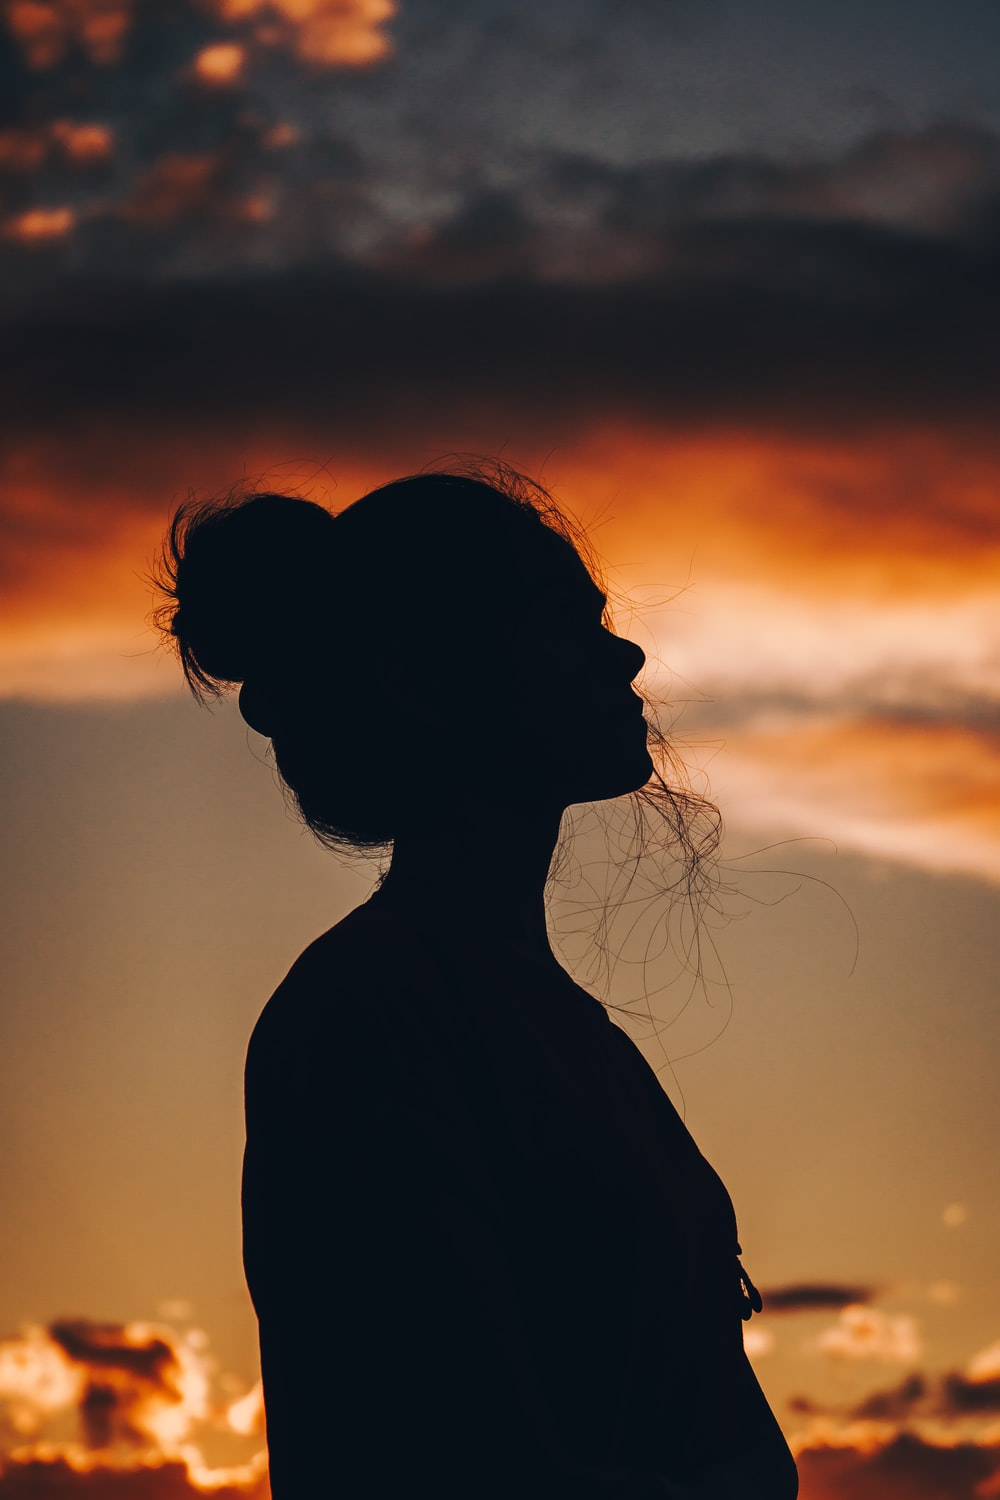 500 Silhouette Pictures Hd Download Free Images On Unsplash